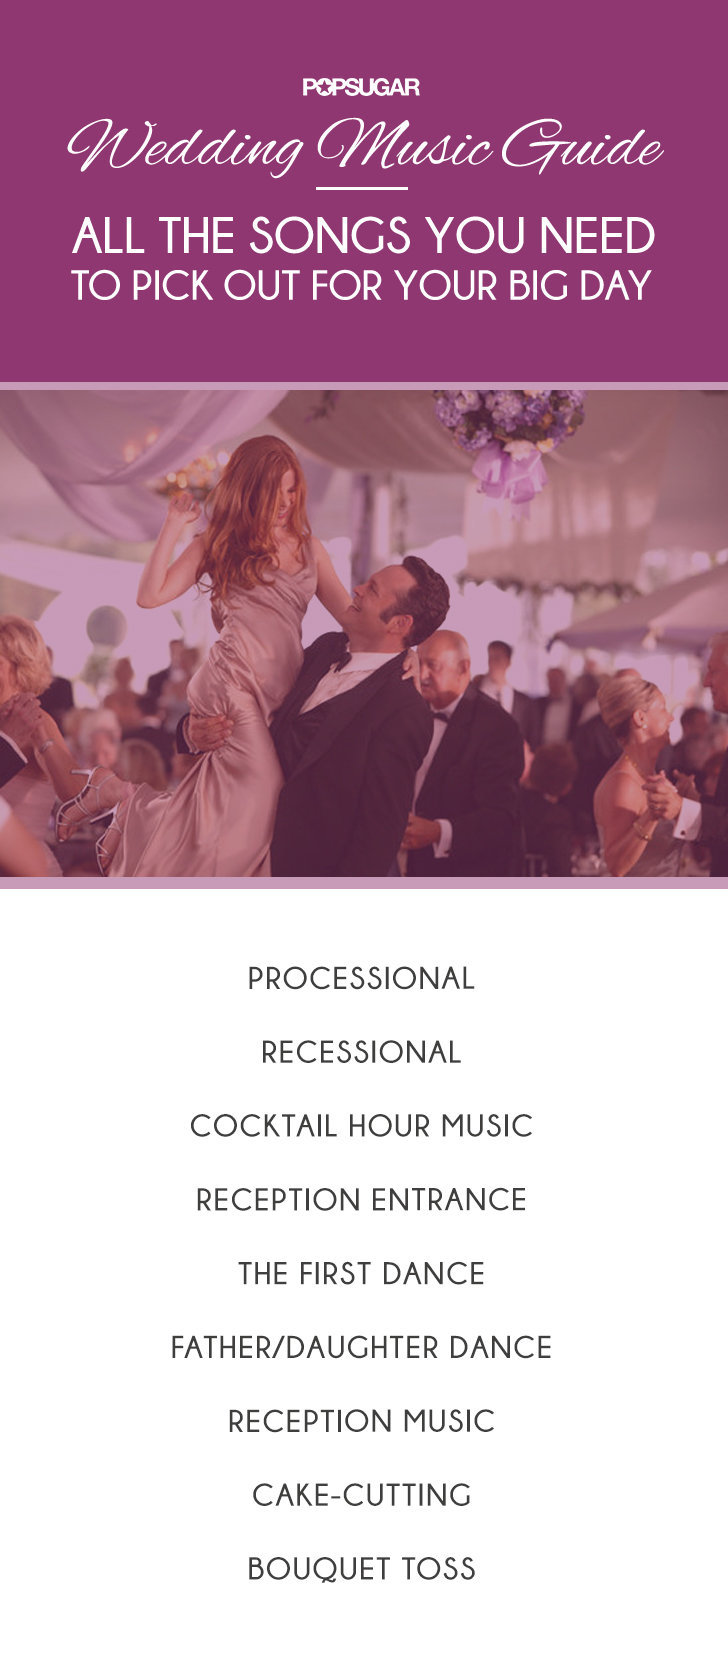 Wedding music guide popsugar middle east celebrity and entertainment junglespirit Image collections